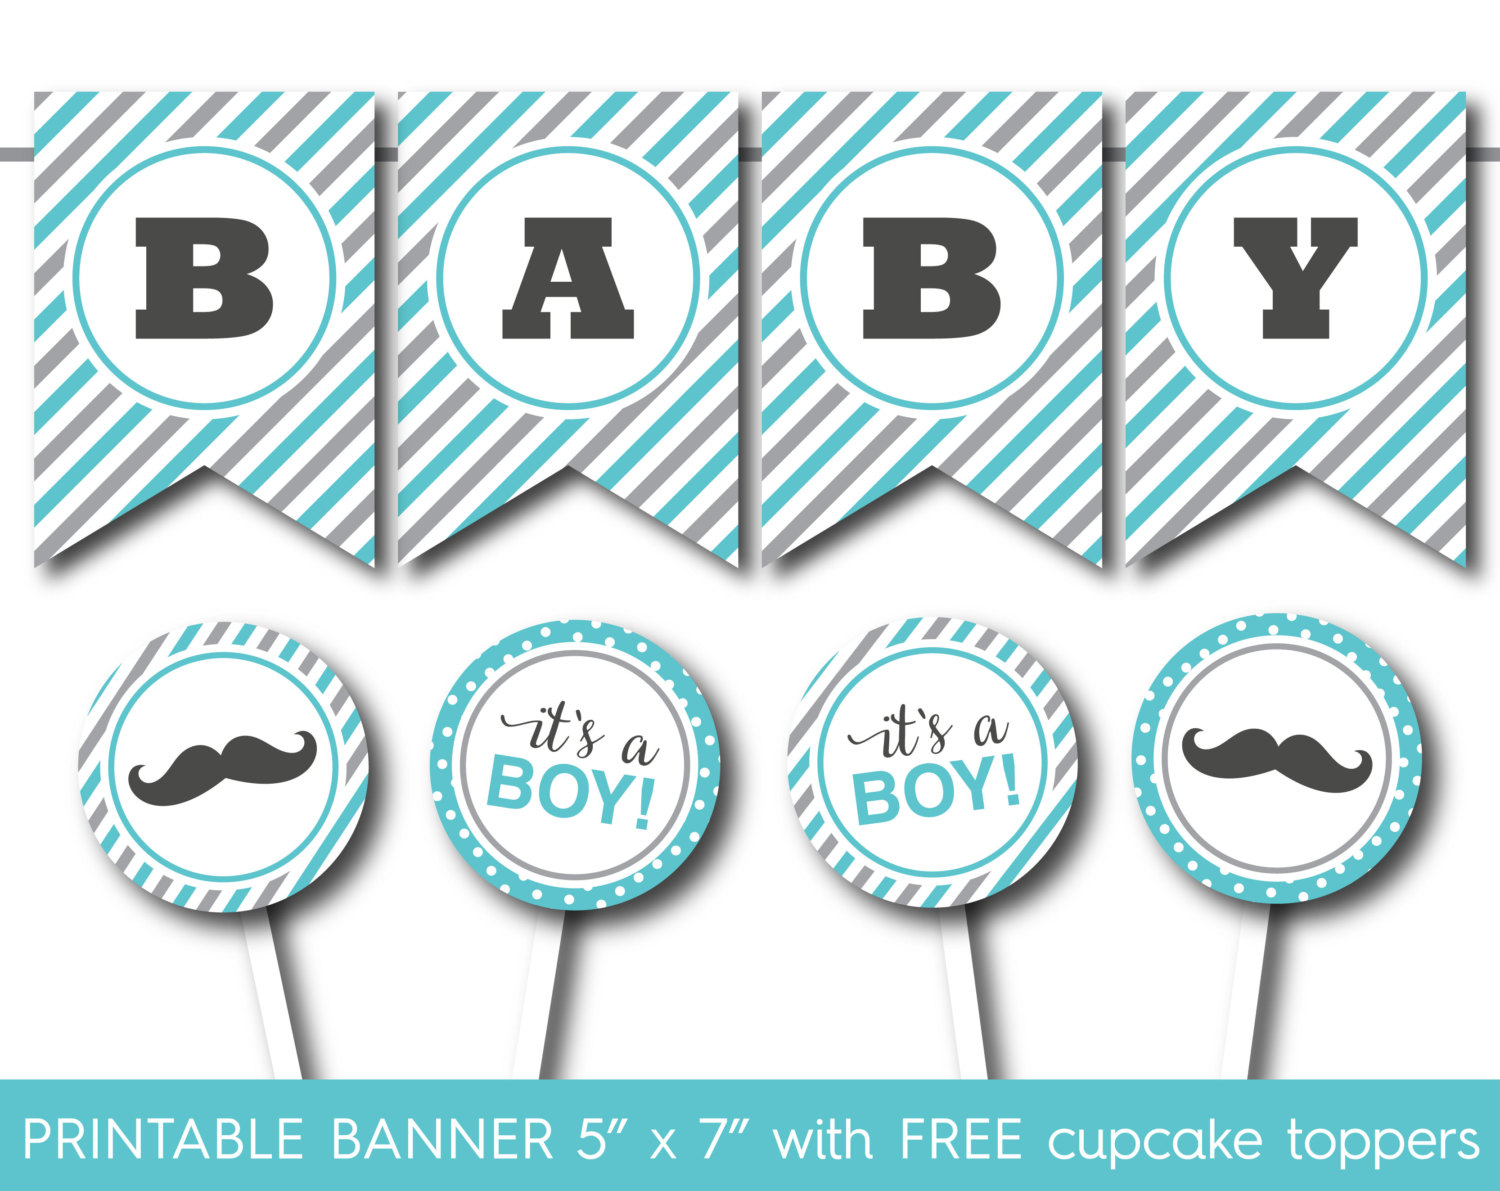 Free Printable Baby Shower Banner Letters - Baby Shower Ideas - Free Printable Baby Shower Banner Letters